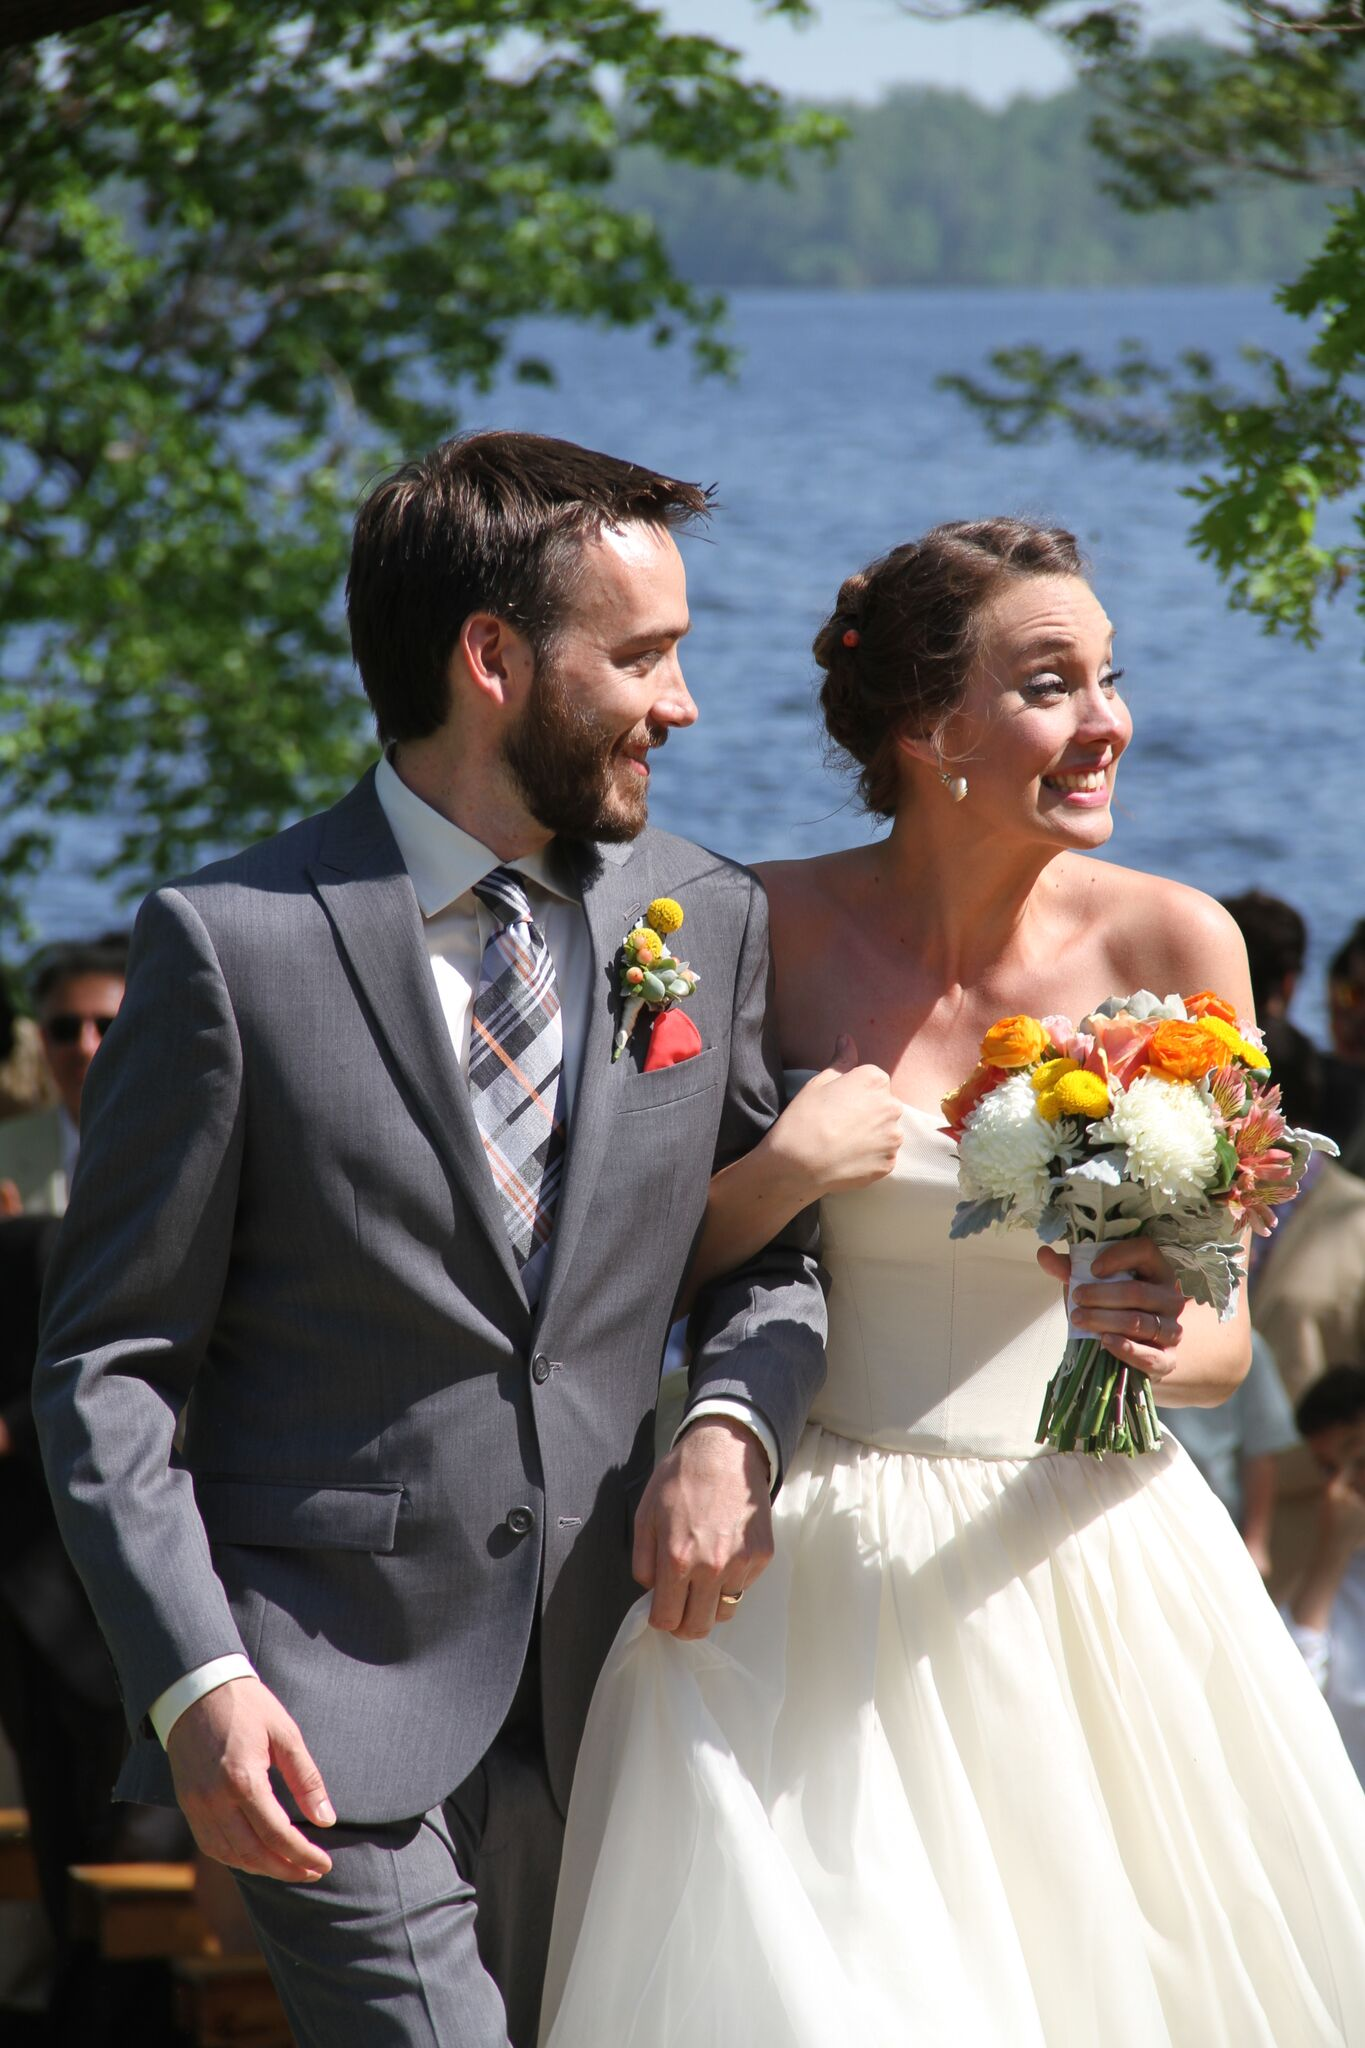 Brus O'Shea Wedding May 2015_7571_preview.jpeg